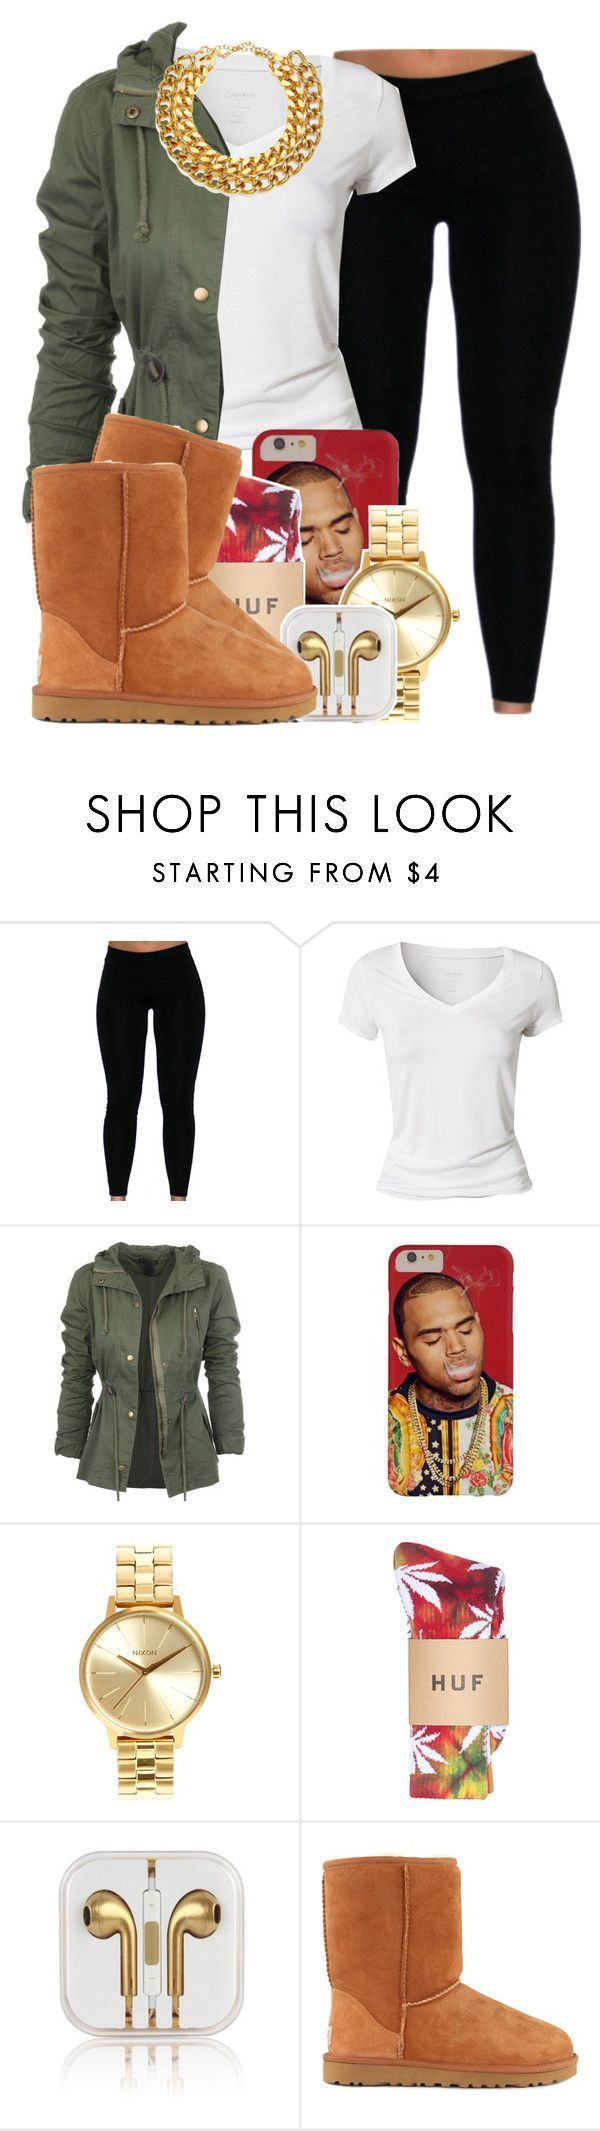 """""""769"""" by tuhlayjuh ❤ liked on Polyvore featuring Calvin Klein, Nixon, UGG Australia and A.V. Max"""